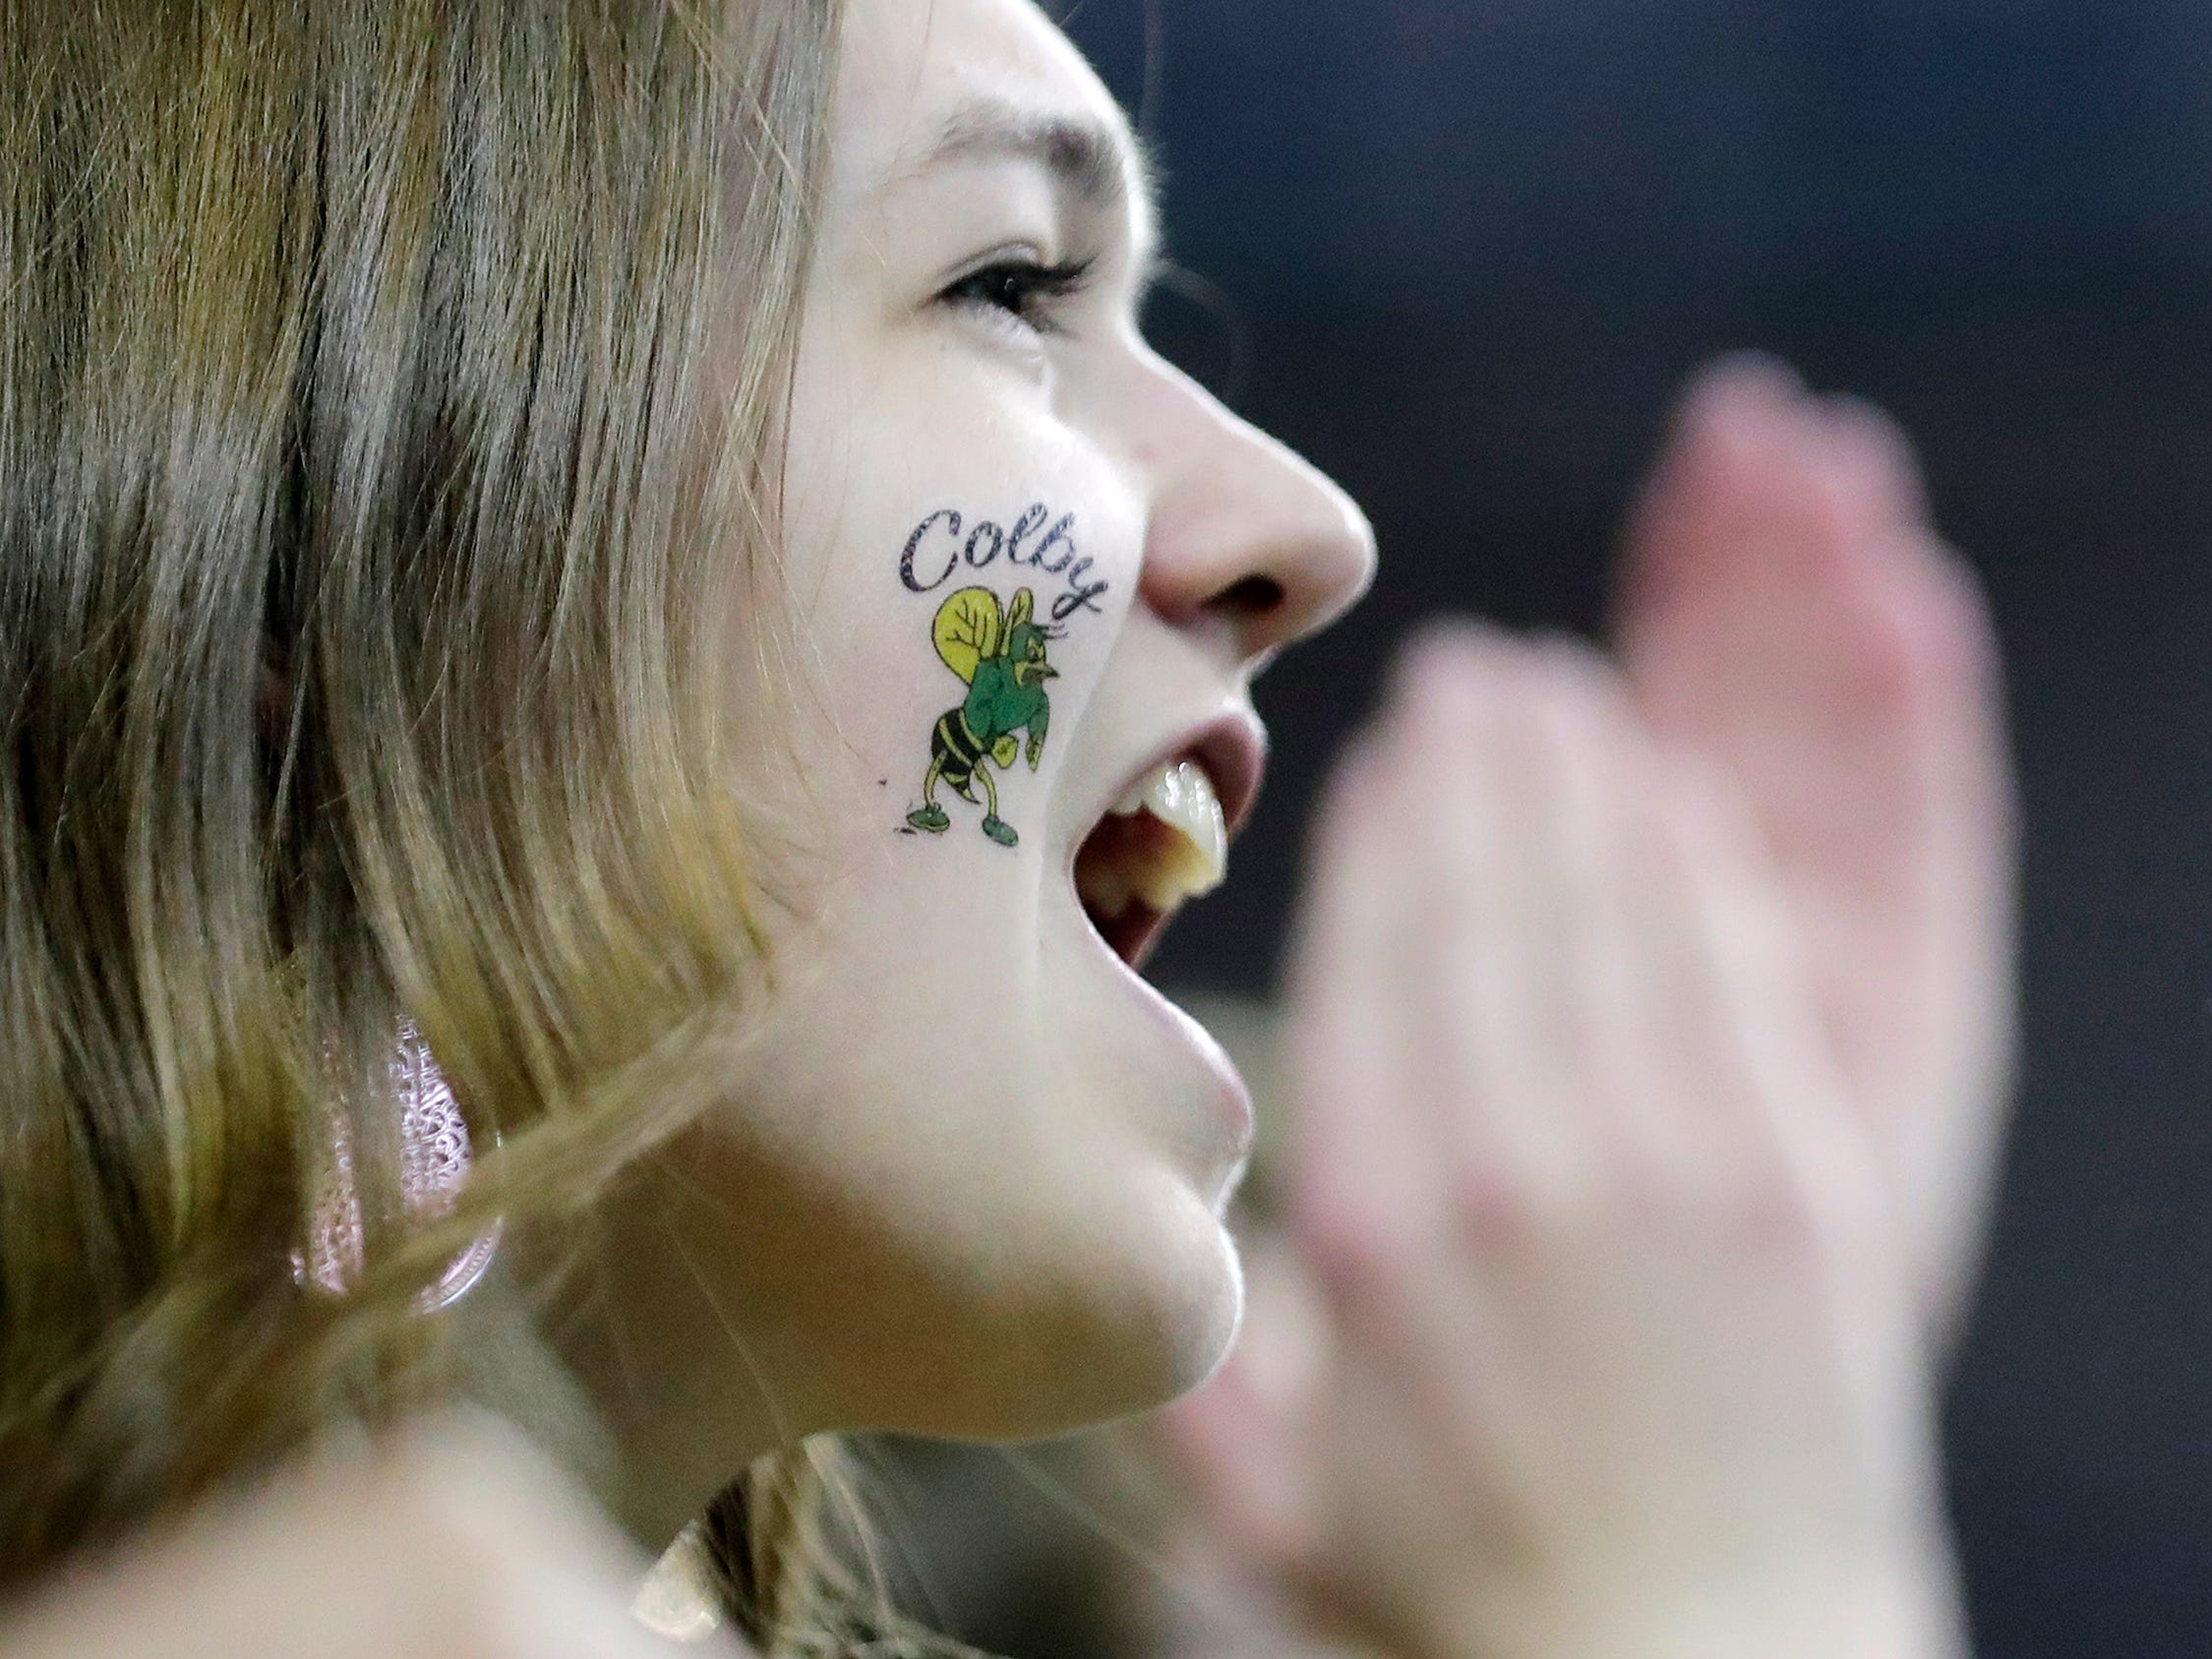 Colby fans cheer in the first half of a Division 3 semifinal at the WIAA state girls basketball tournament at the Resch Center on Thursday, March 7, 2019, in Ashwaubenon, Wis.